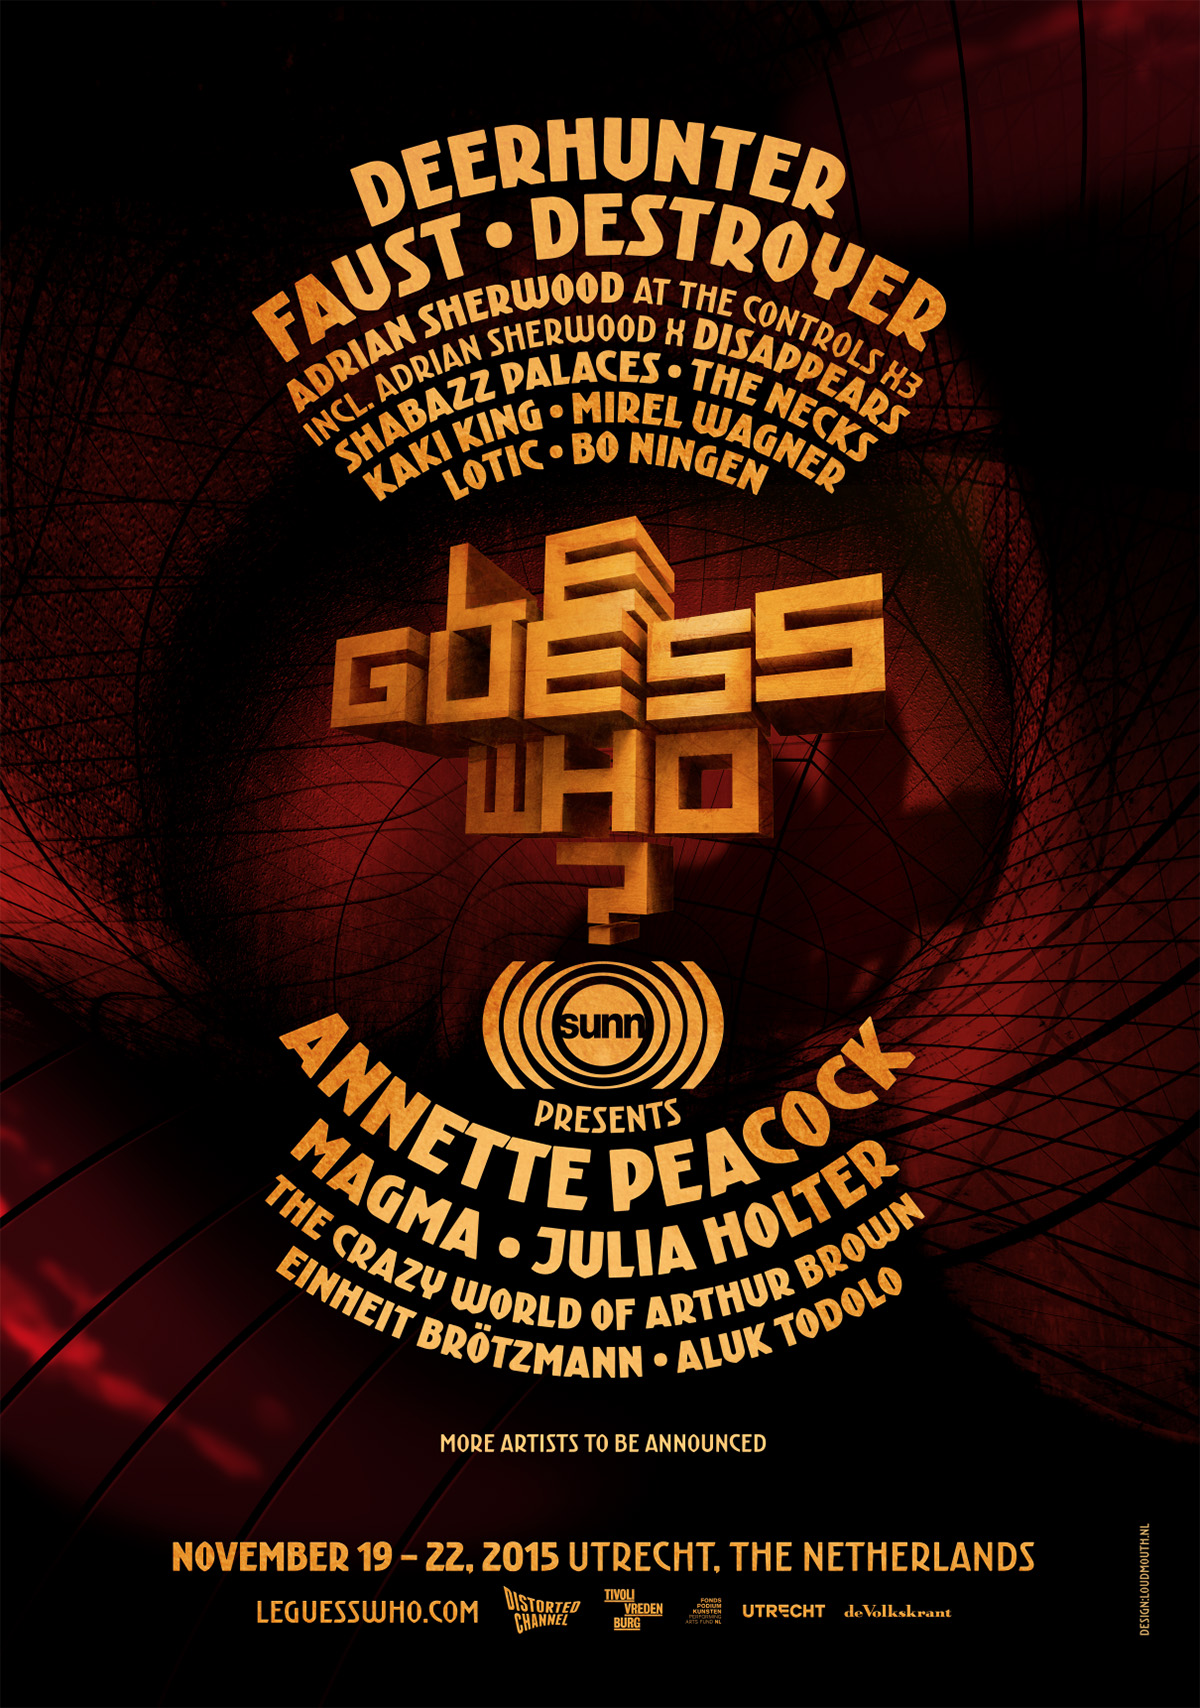 SUNN O))) PRESENTS FOUR-DAY PROGRAM AT LE GUESS WHO? FESTIVAL 2015, INCLUDING ANNETTE PEACOCK AND MAGMA